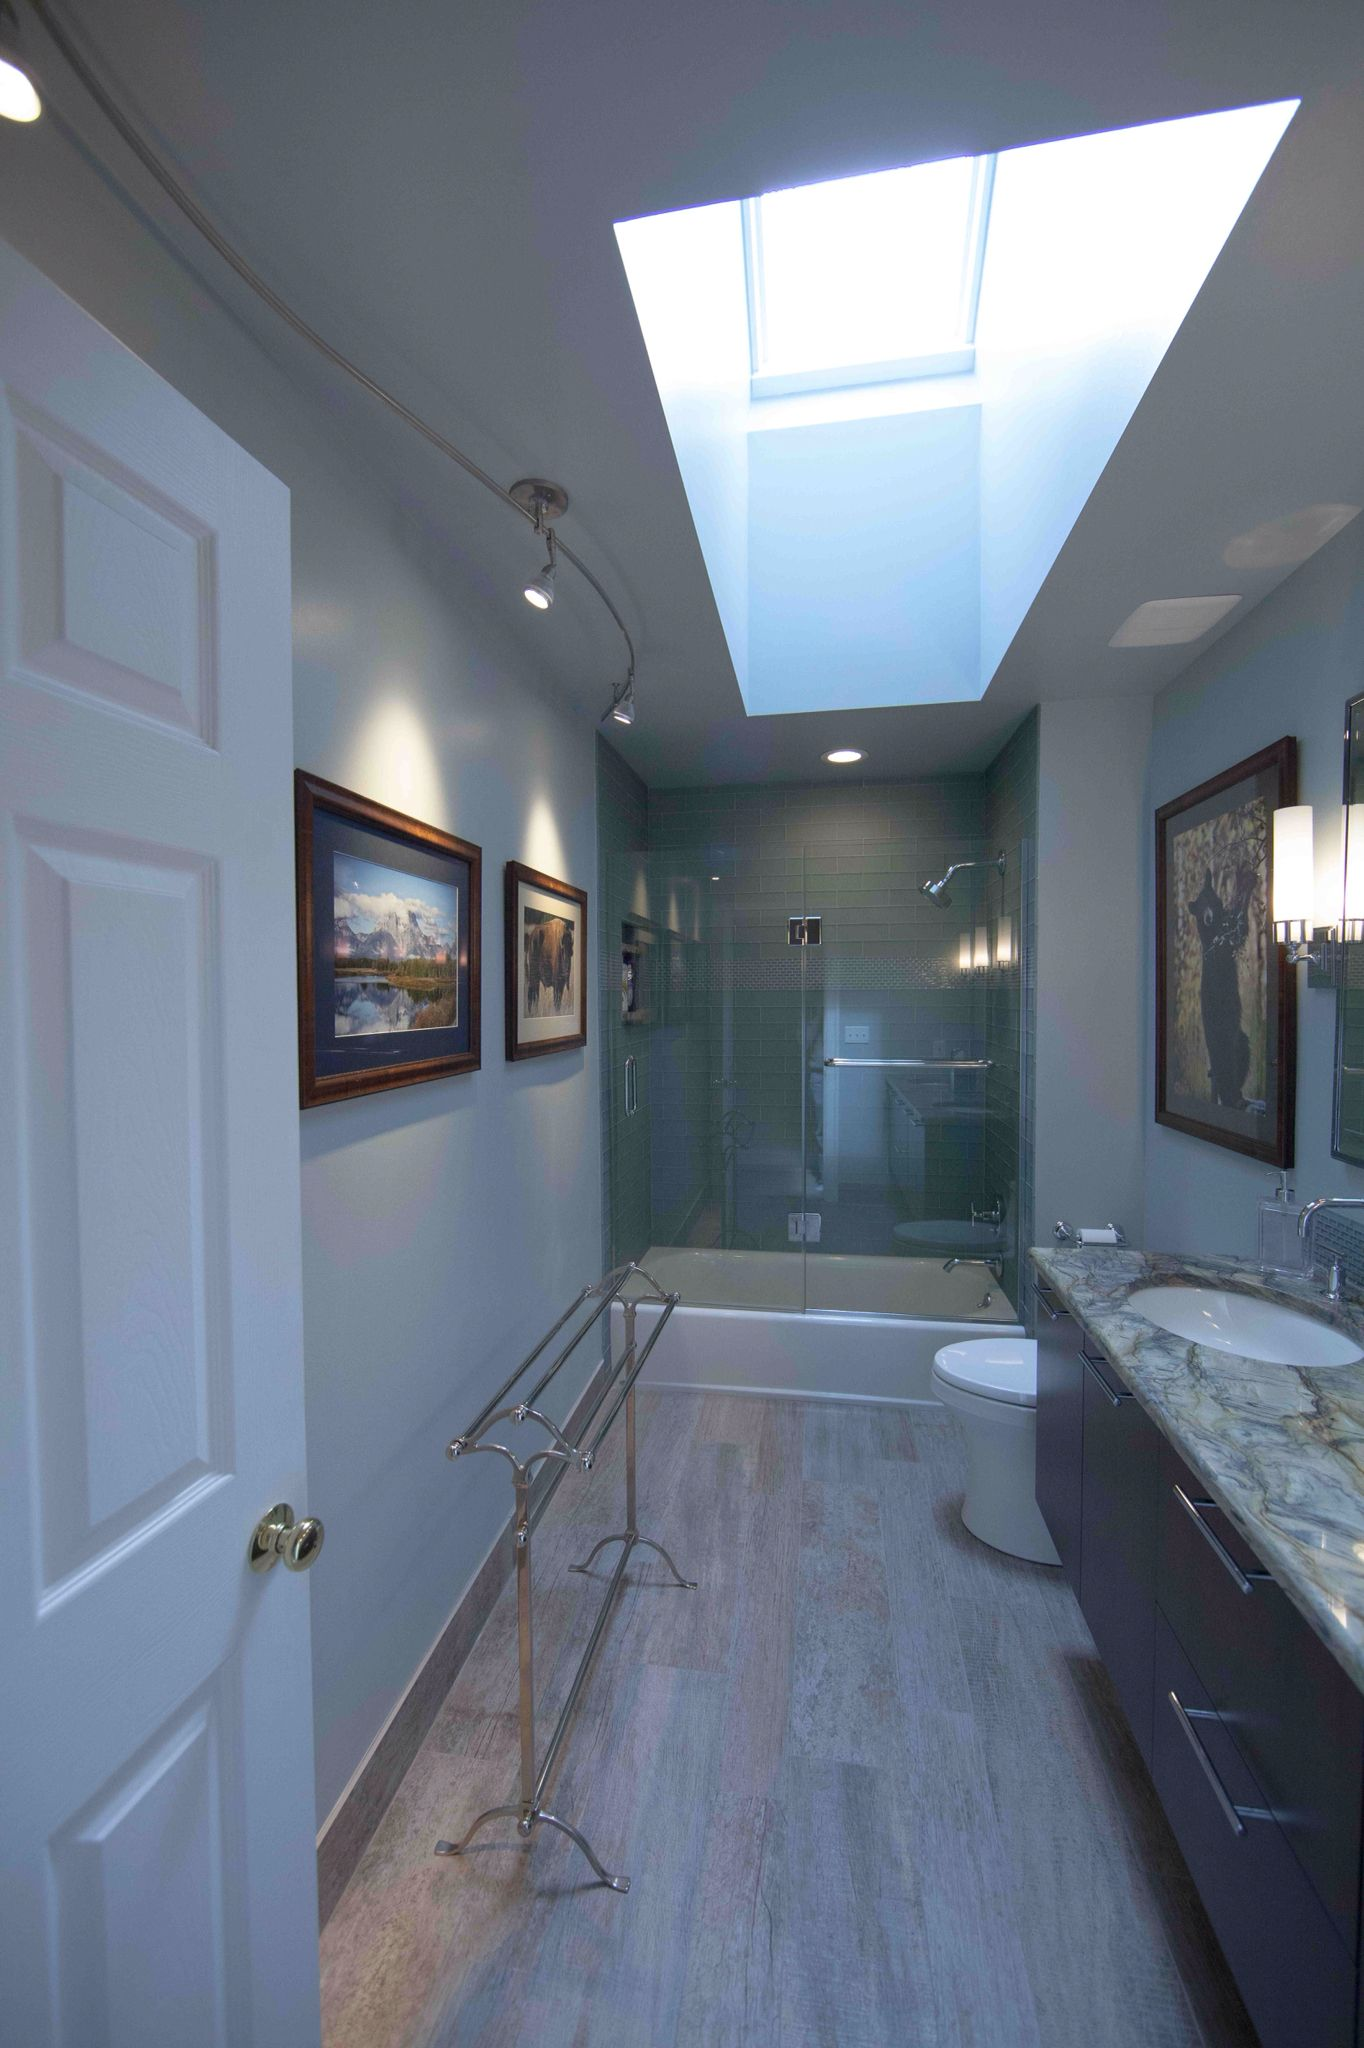 Hall bathroom with two sinks